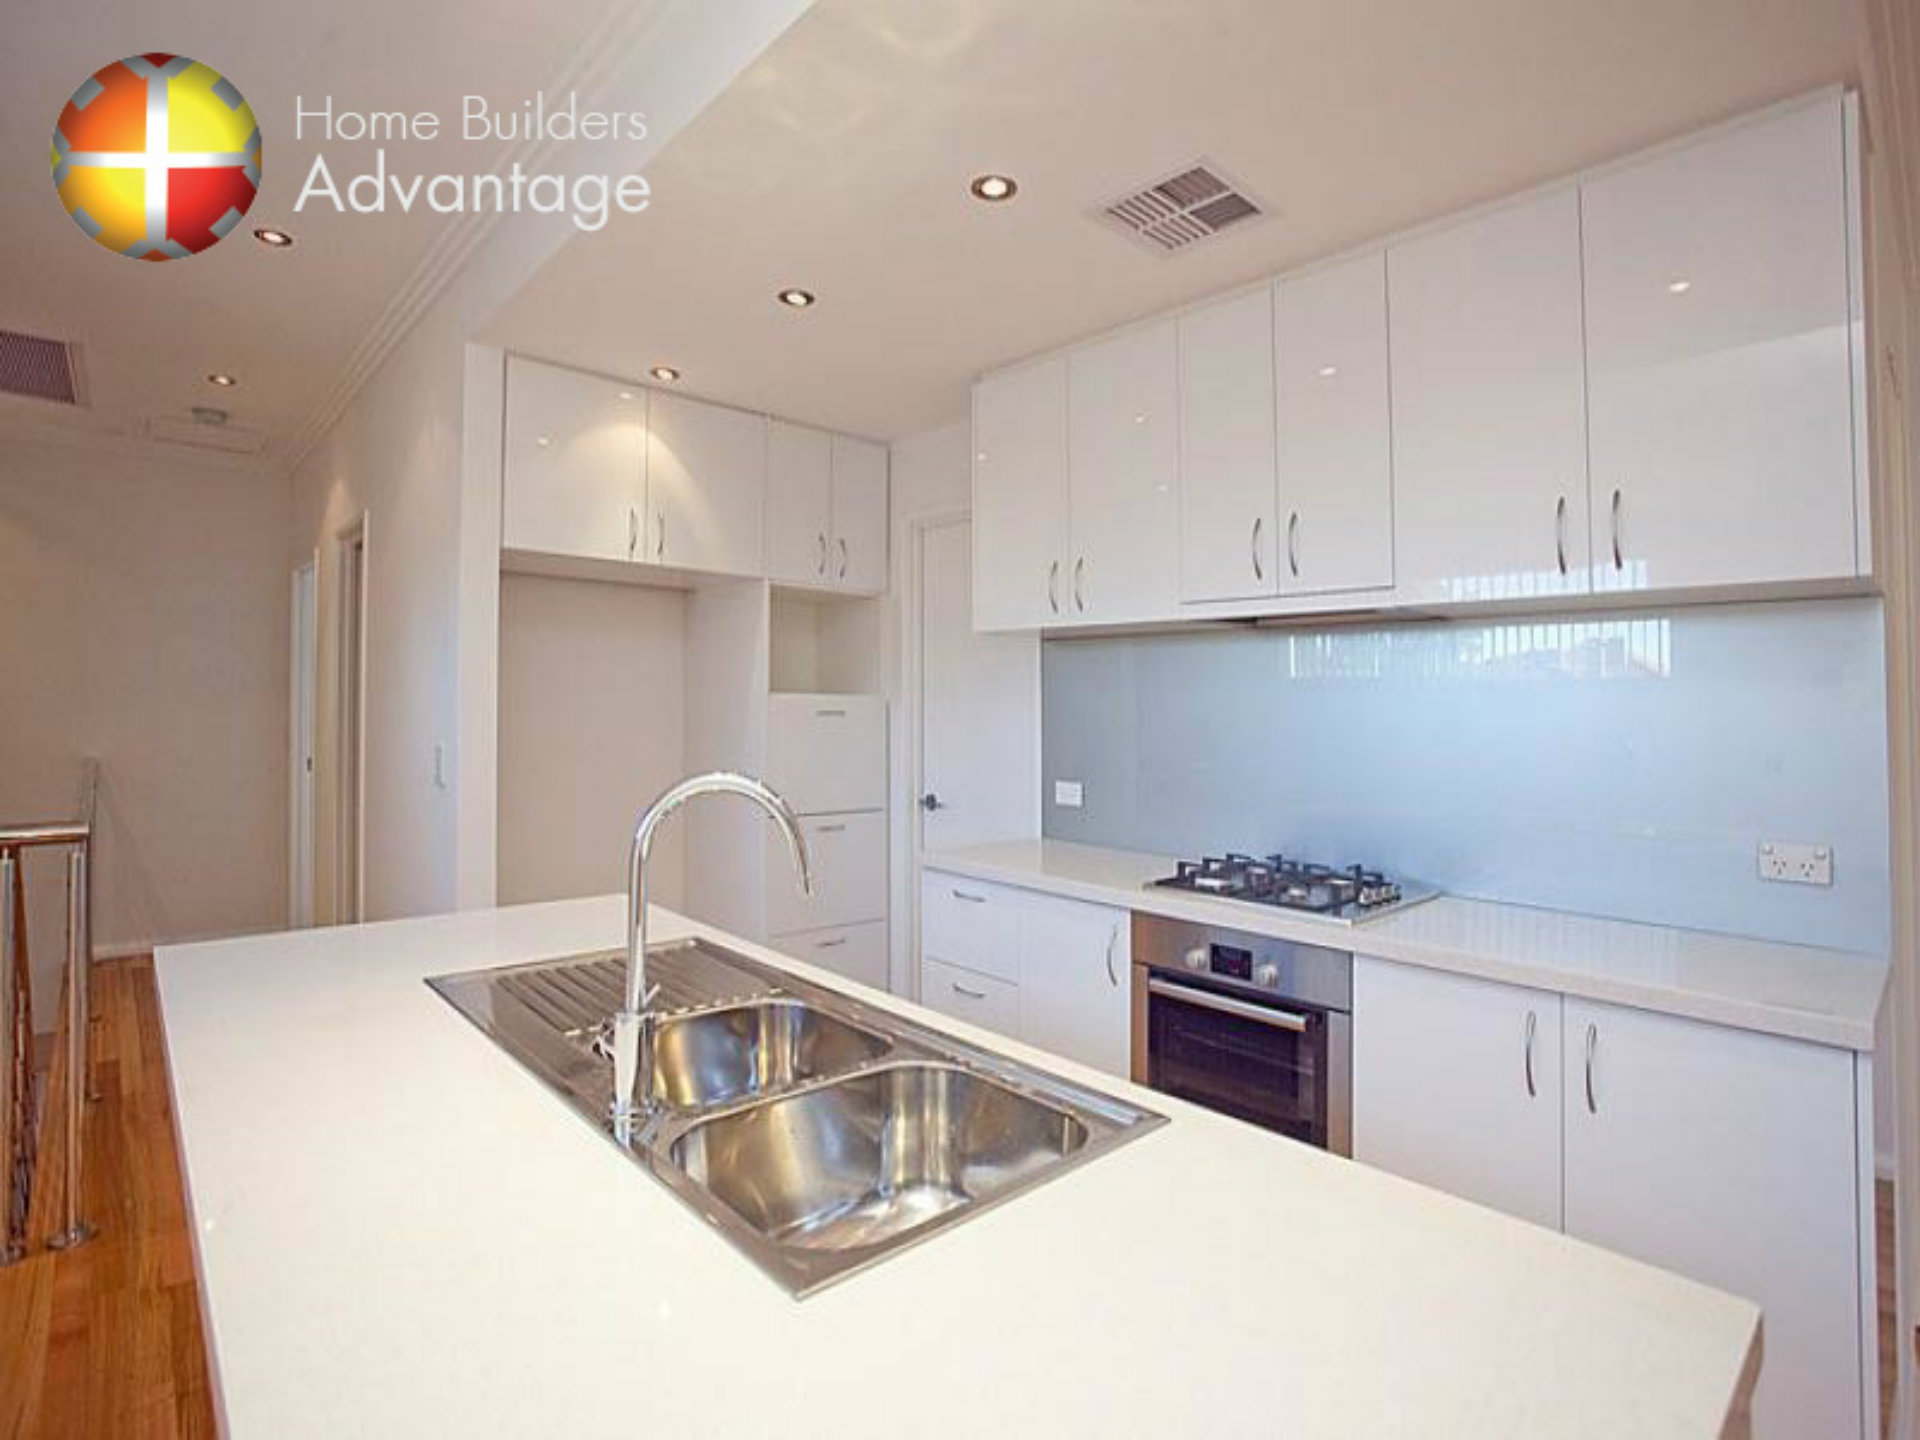 kitchen cabinets perth | www.cintronbeveragegroup.com